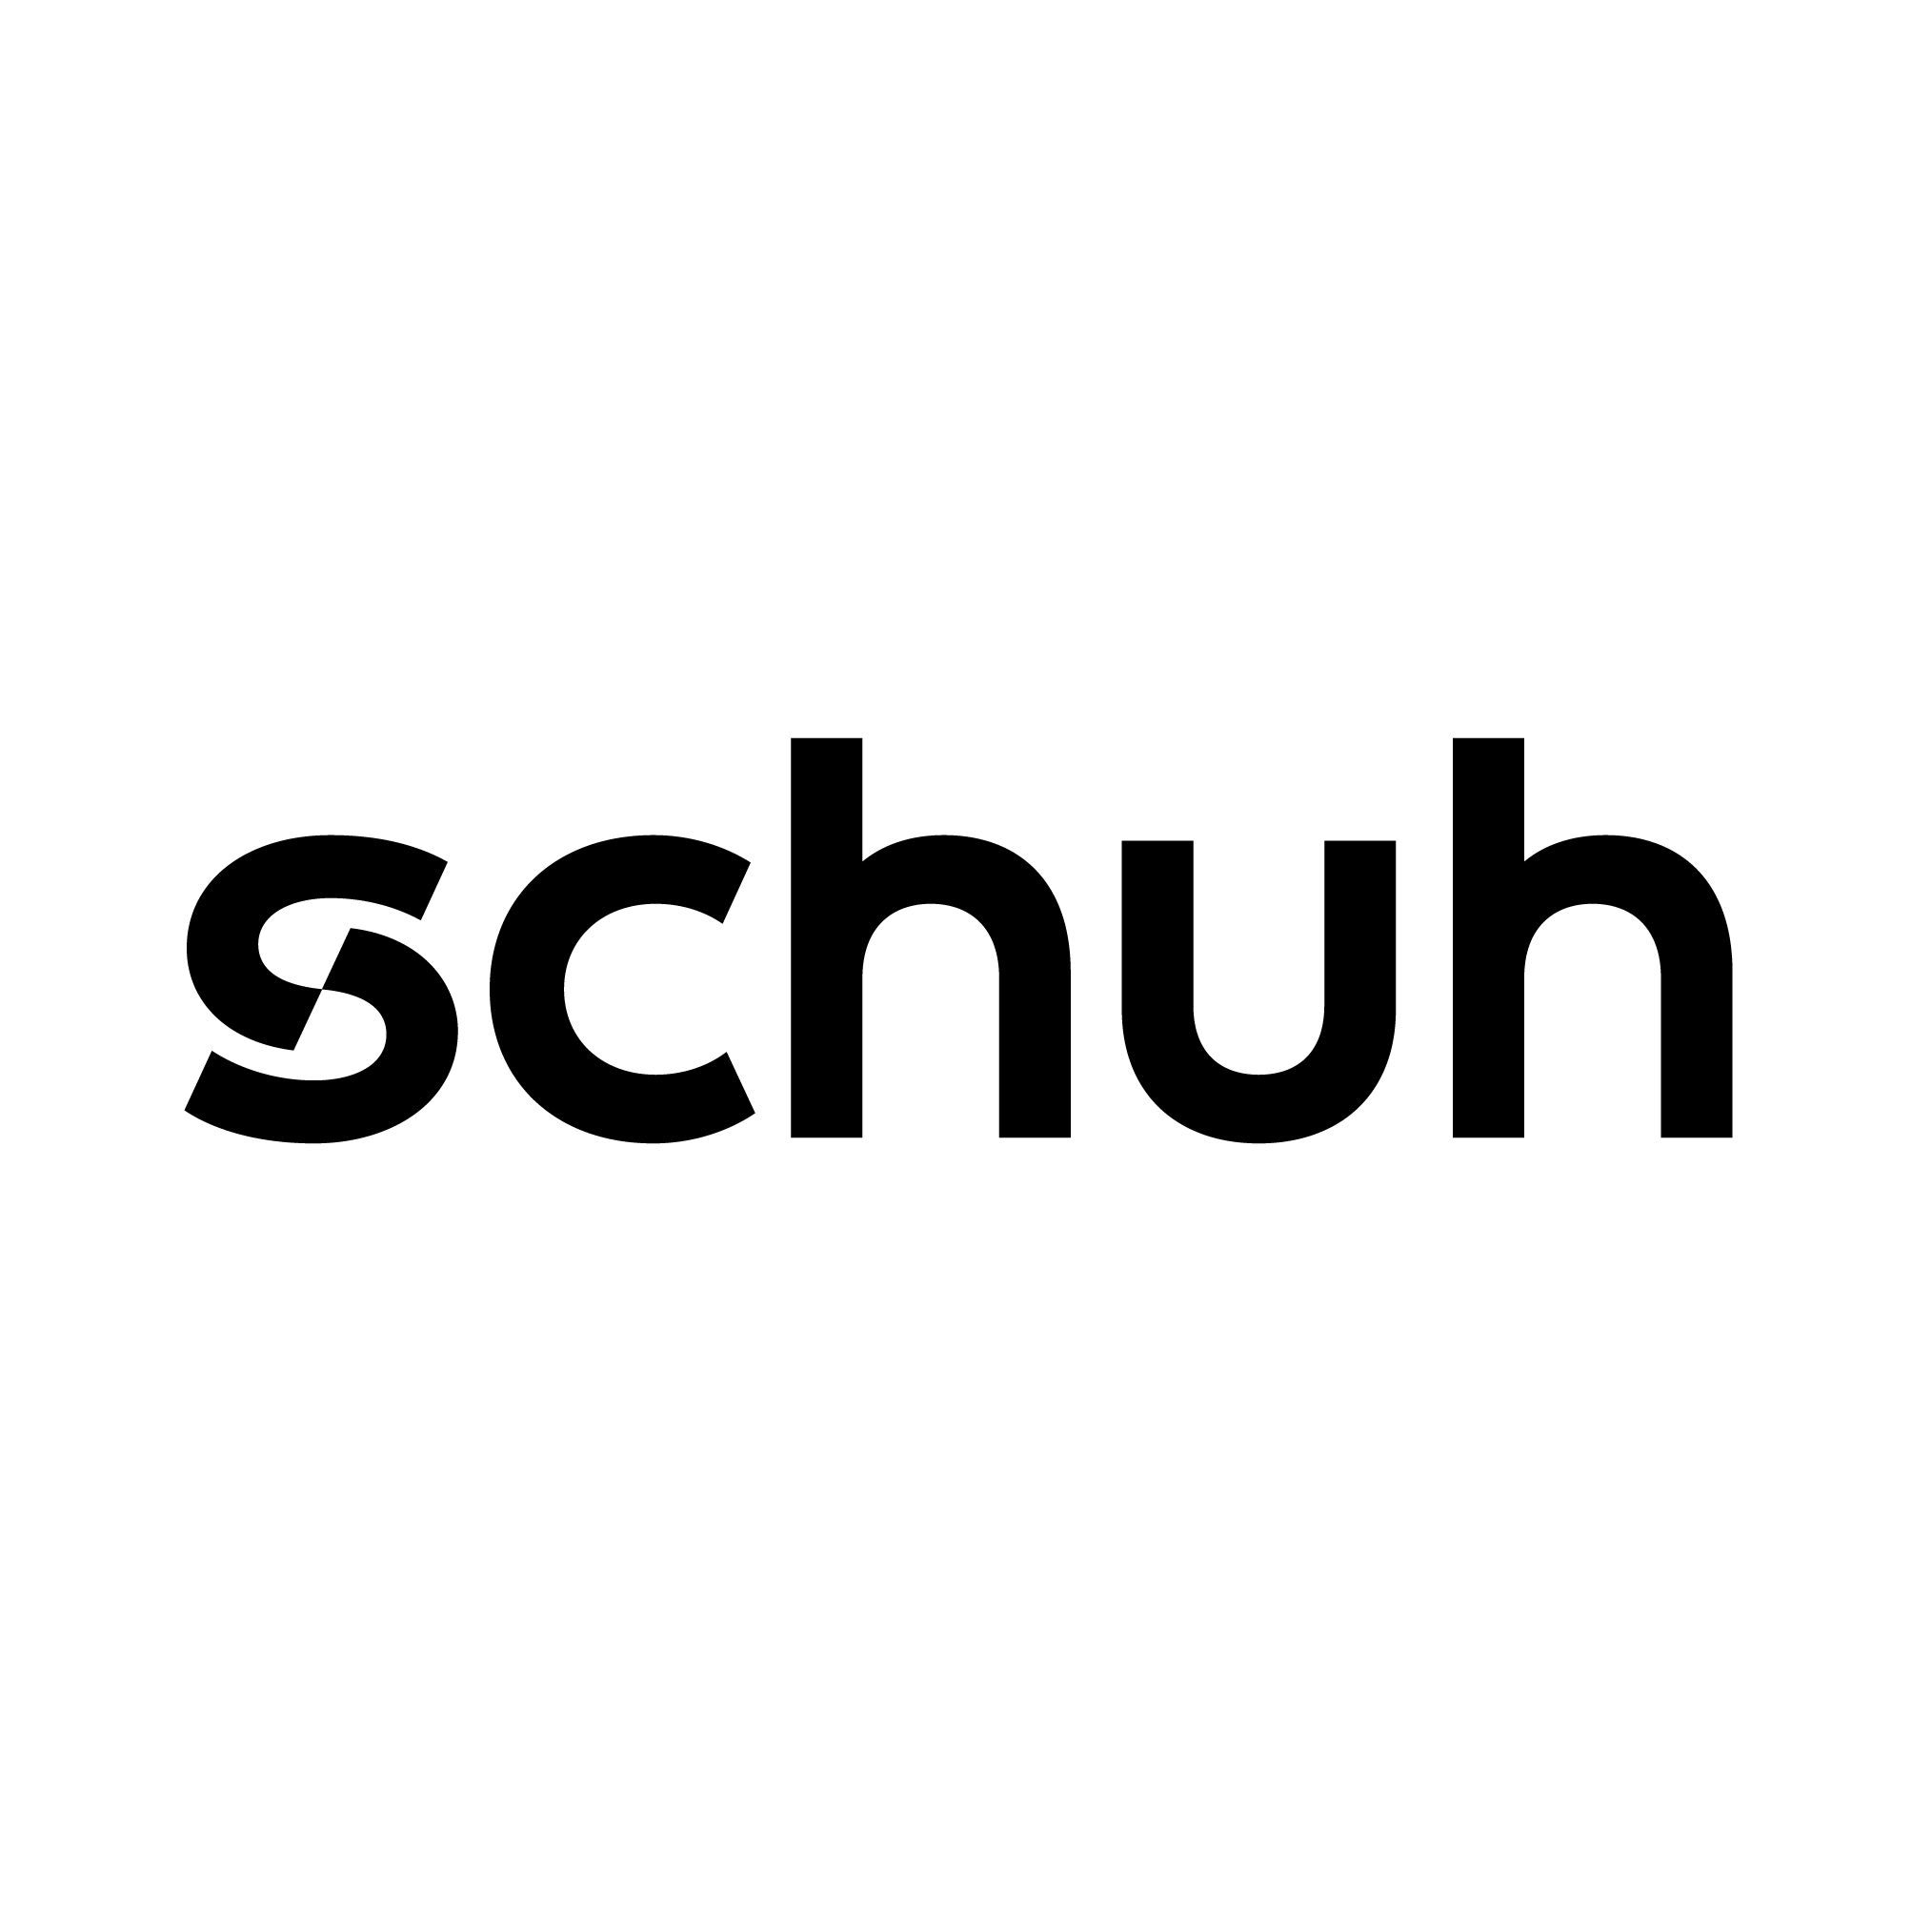 schuh - Guildford, Surrey GU1 4YT - 01483 331273 | ShowMeLocal.com